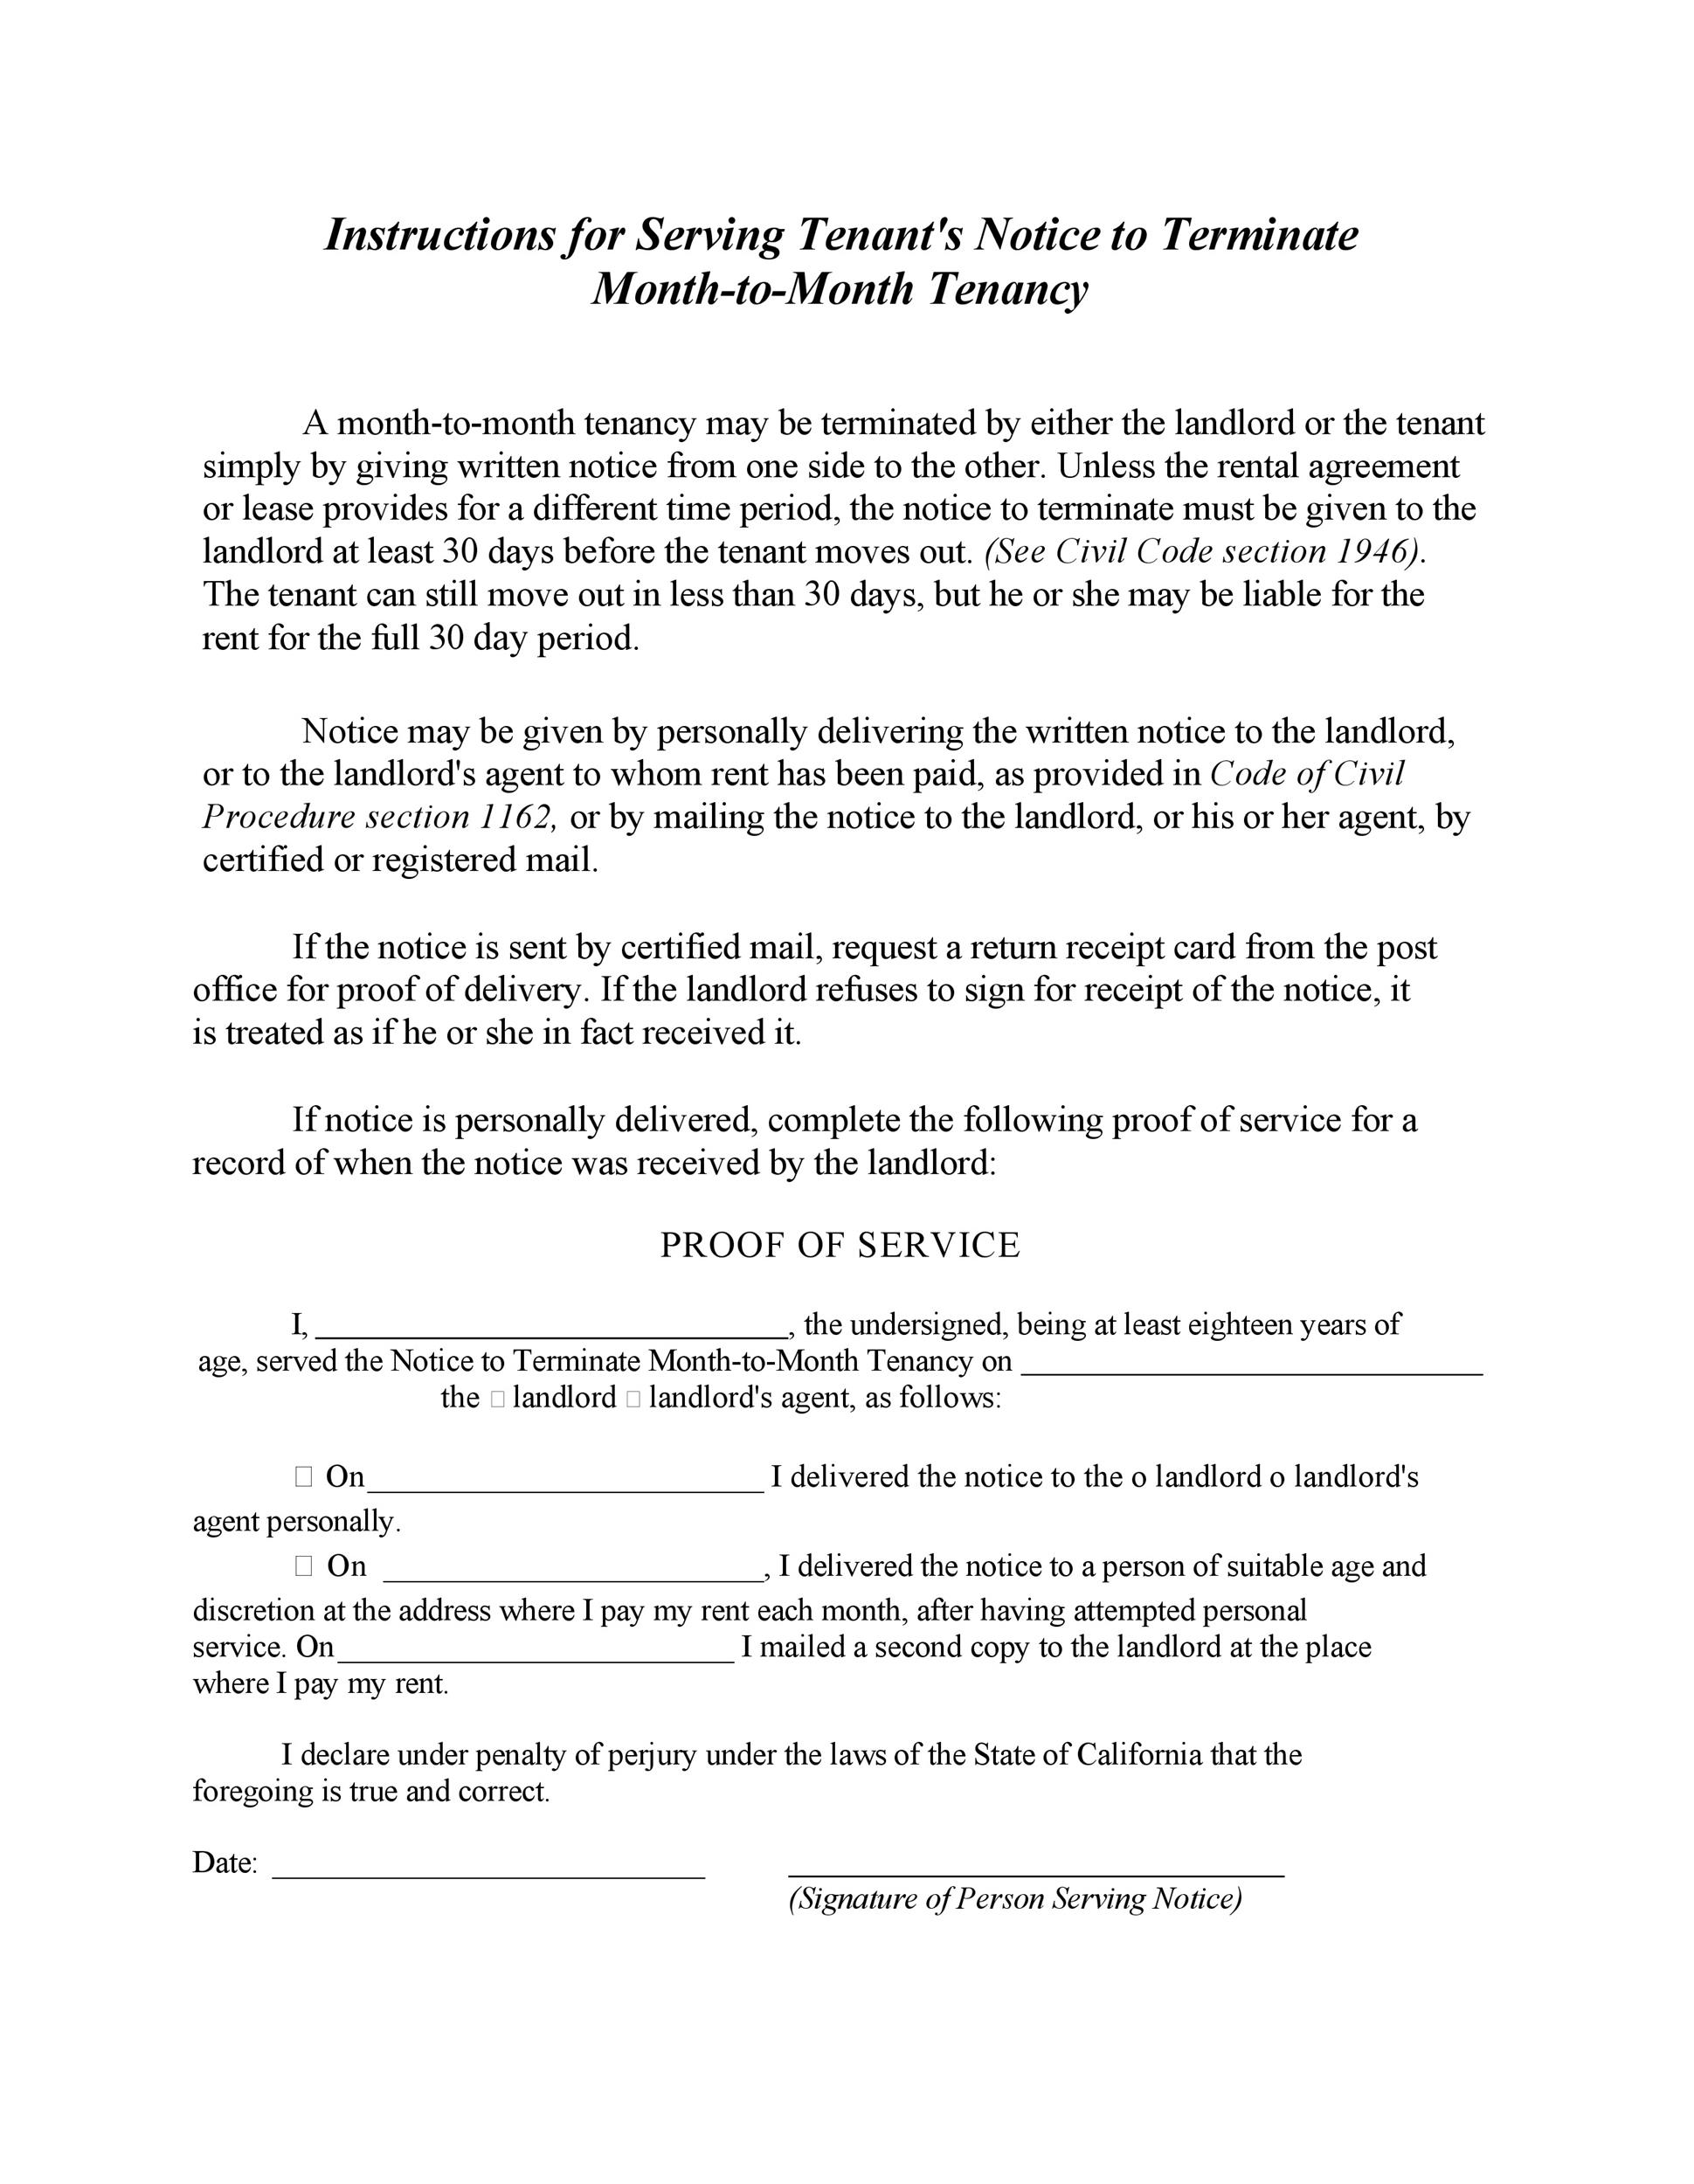 Notice to Terminate Month-to-Month Tenancy